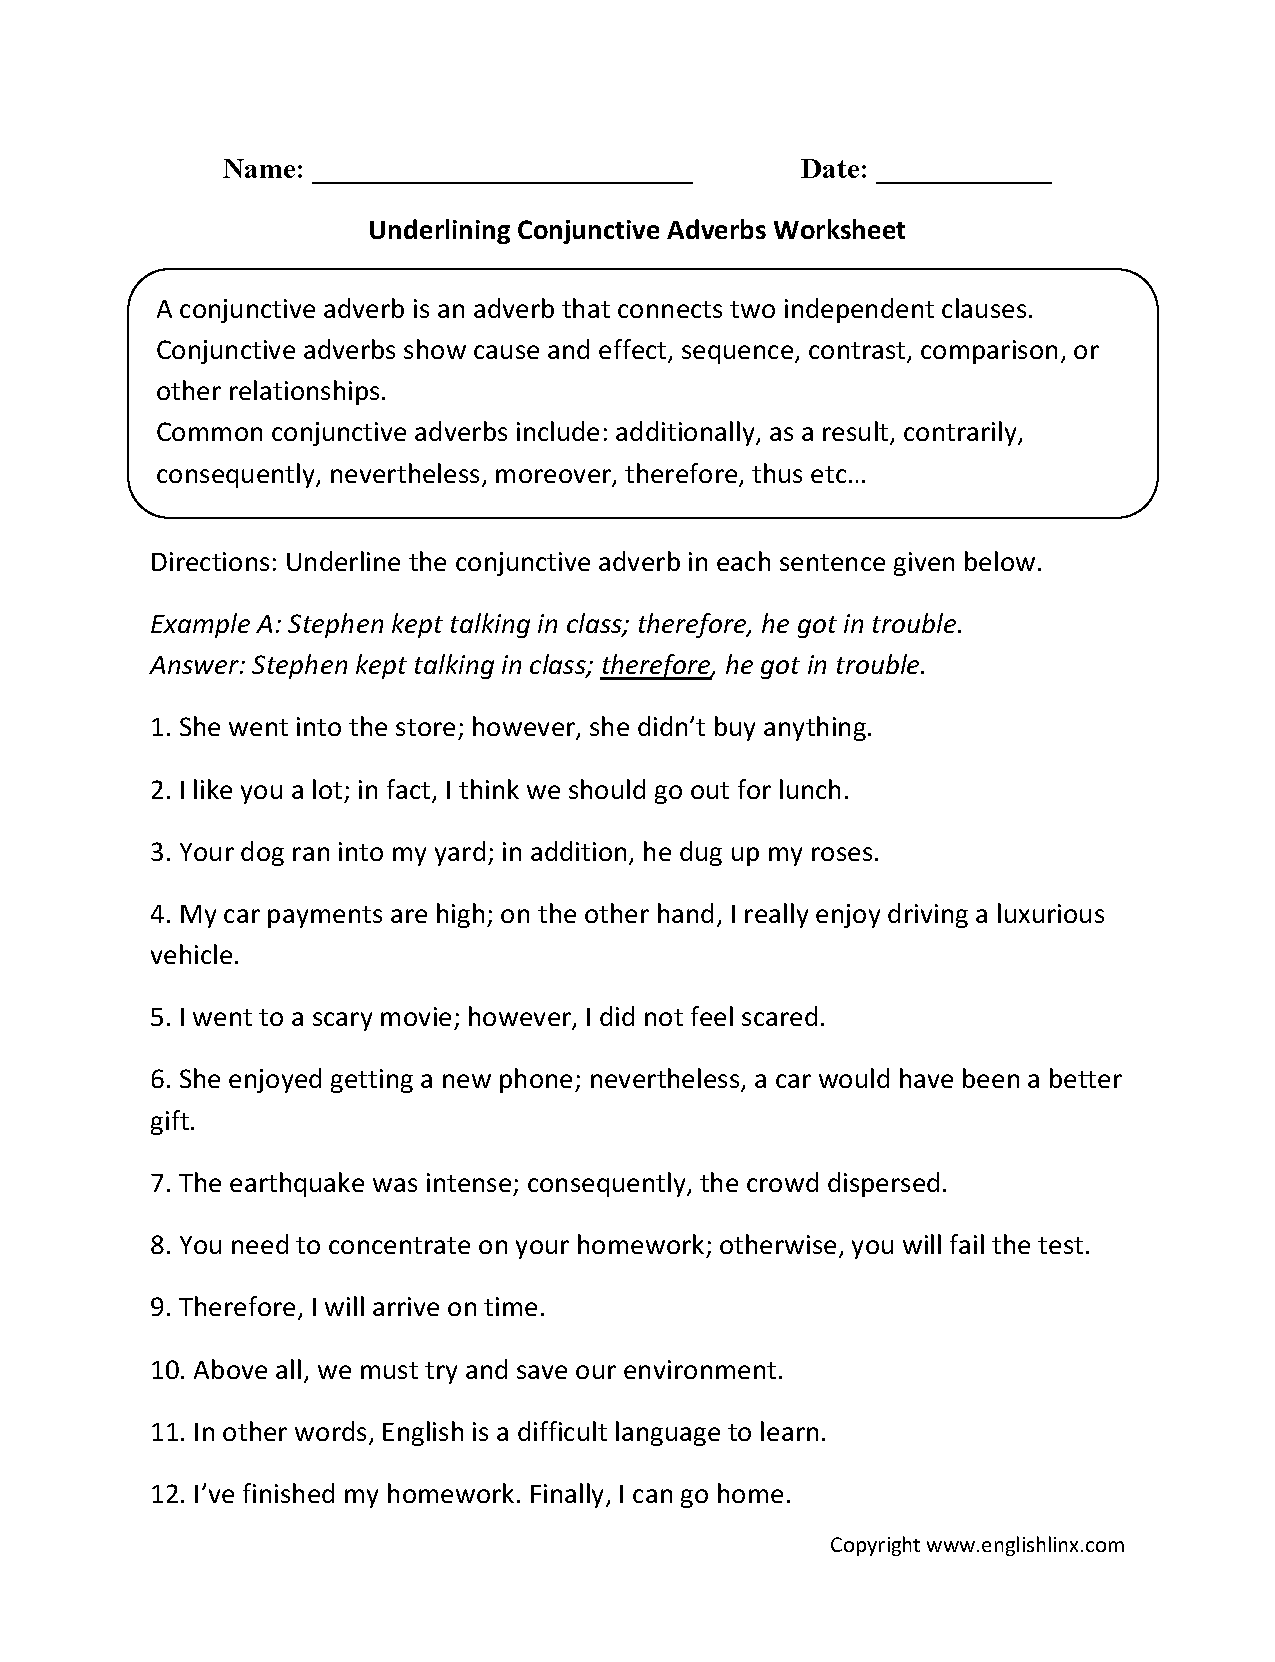 Weirdmailus  Pleasant Englishlinxcom  Conjunctions Worksheets With Fair Worksheet With Breathtaking Free Printable Letter C Worksheets Also Arabic Alphabet For Kids Worksheets In Addition Picture Graph Worksheets Nd Grade And Rhyming Words Kindergarten Worksheets As Well As Context Clues Rd Grade Worksheets Additionally Th Grade Graphing Worksheets From Englishlinxcom With Weirdmailus  Fair Englishlinxcom  Conjunctions Worksheets With Breathtaking Worksheet And Pleasant Free Printable Letter C Worksheets Also Arabic Alphabet For Kids Worksheets In Addition Picture Graph Worksheets Nd Grade From Englishlinxcom